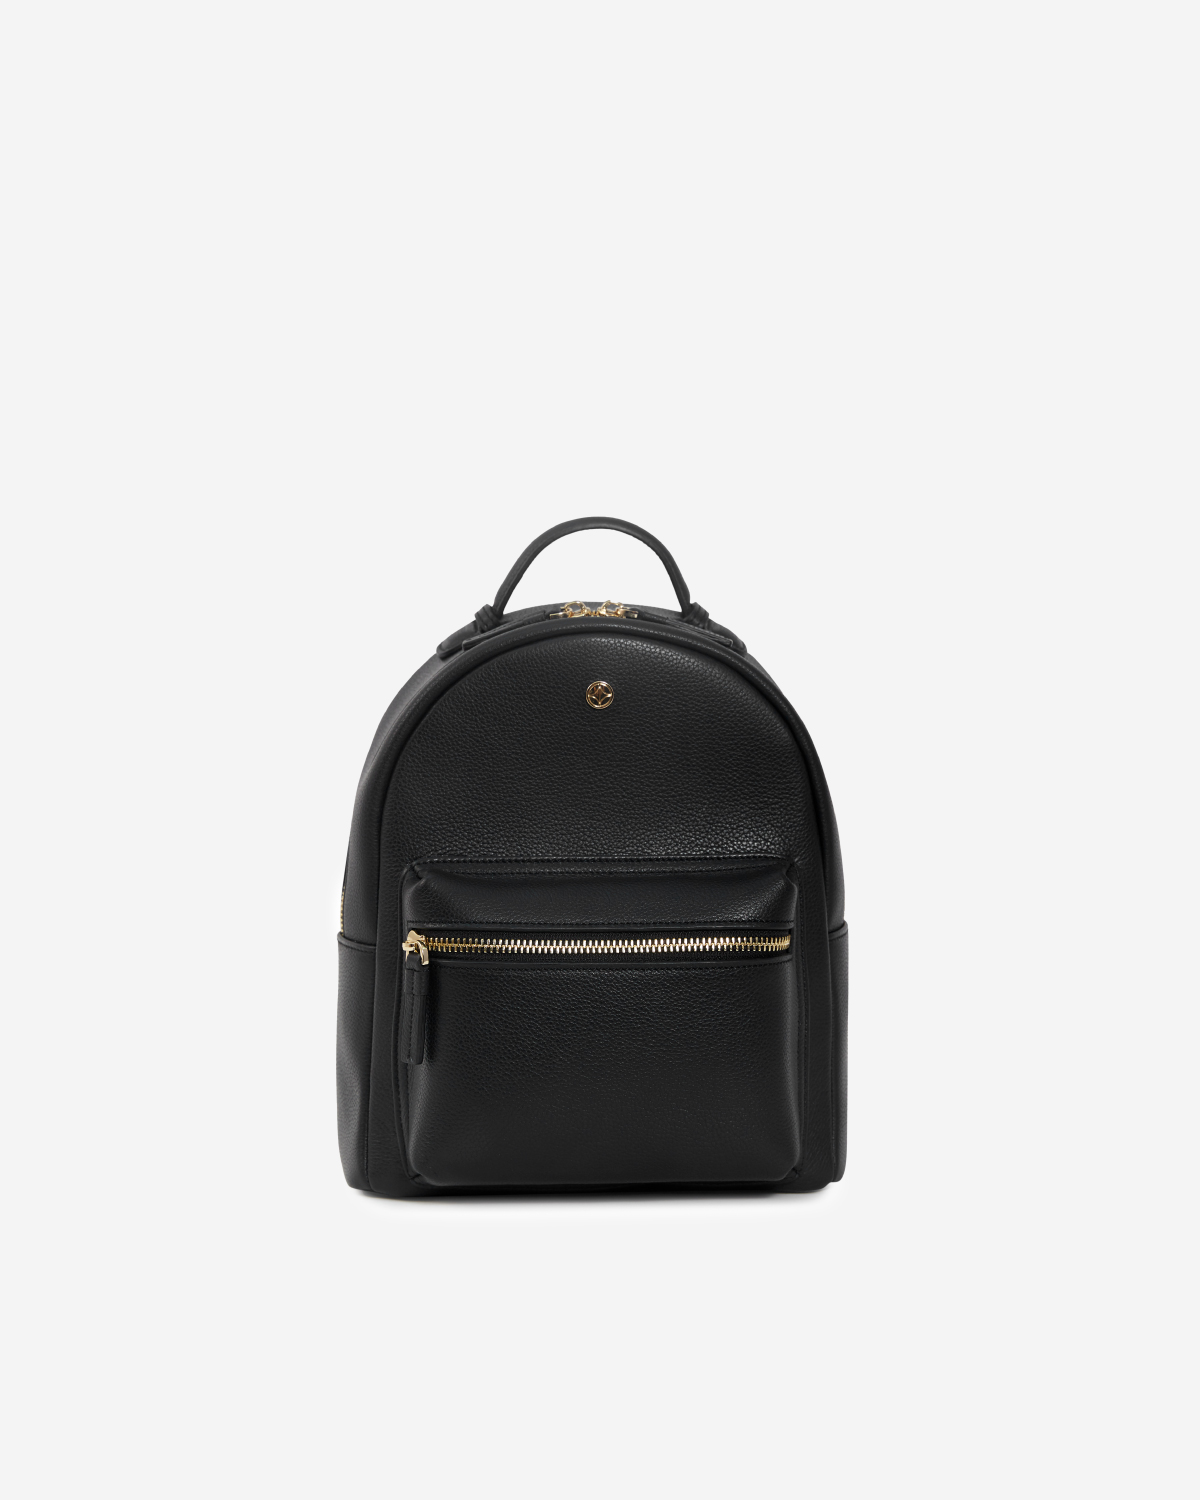 VERA Little Journey in Urban Black